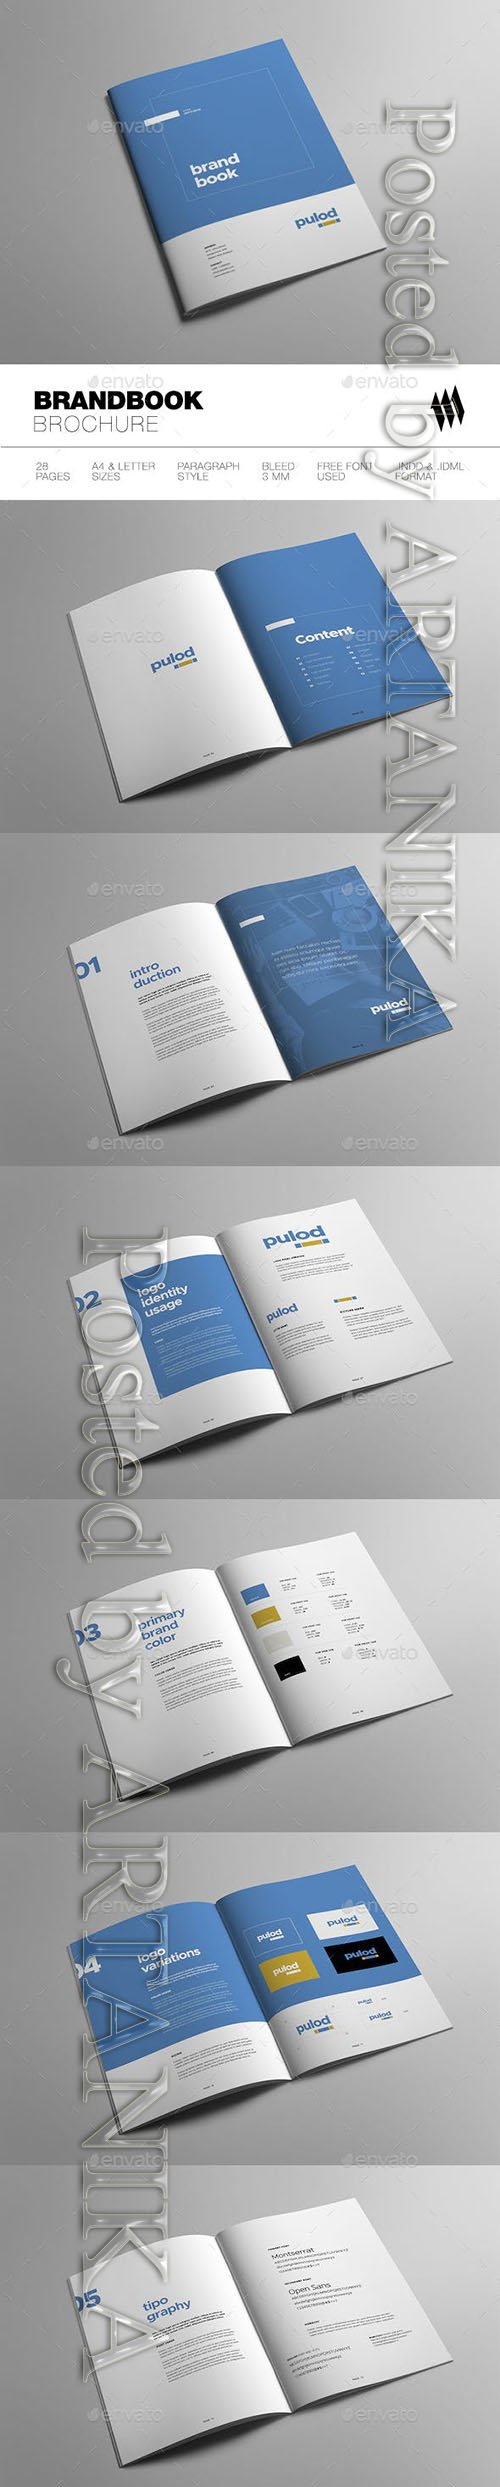 Graphicriver - Minimal Brand Book 19232153